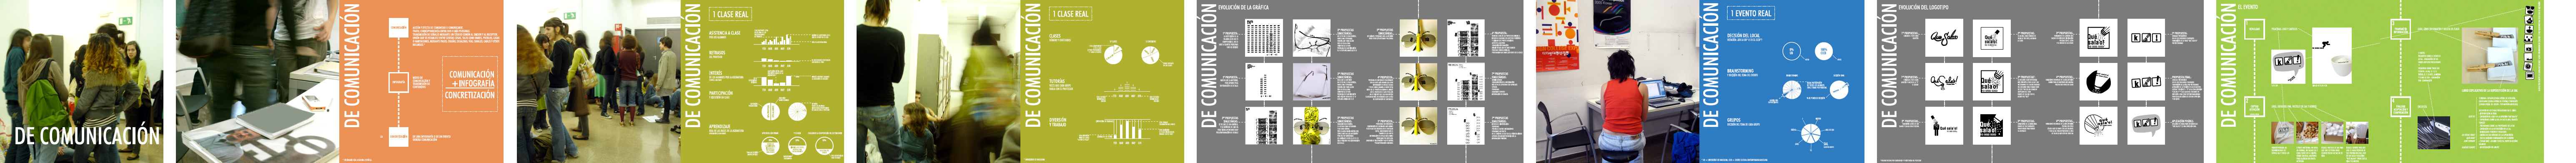 infographics_UNIVERSITY_OF_BARCELONA_3.jpg